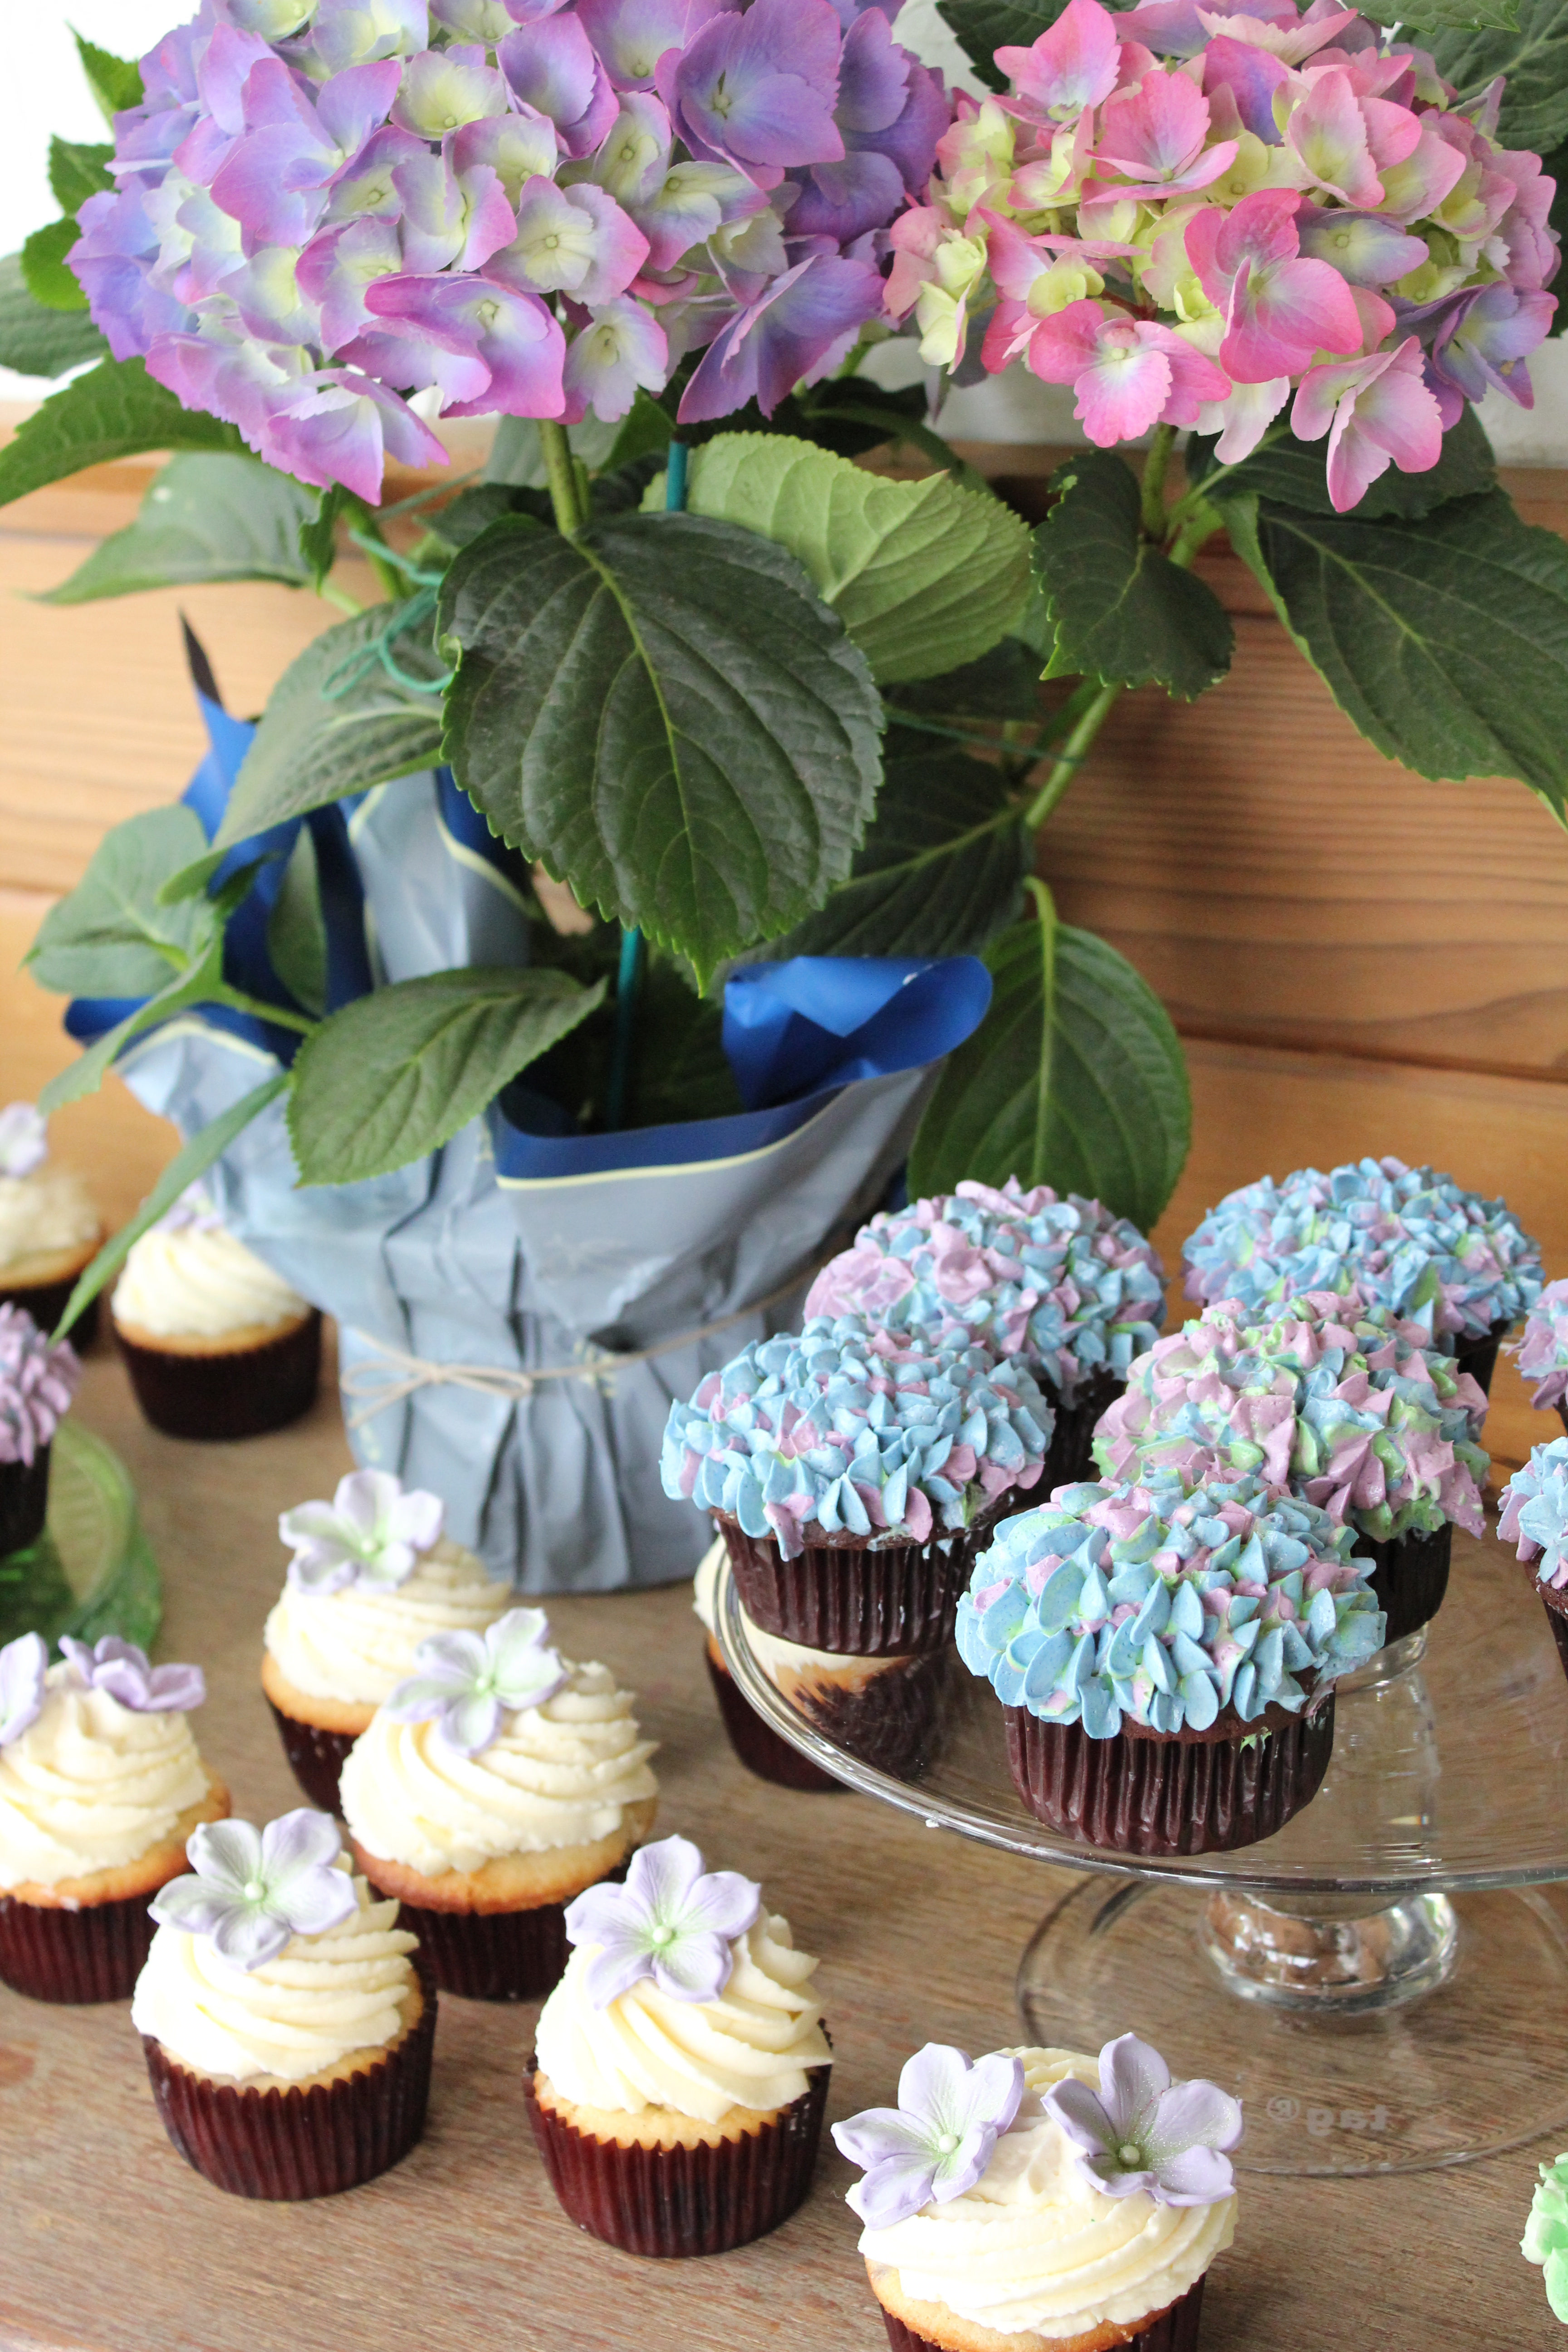 Bridal Shower Cupcakes There Goes the Cupcake...